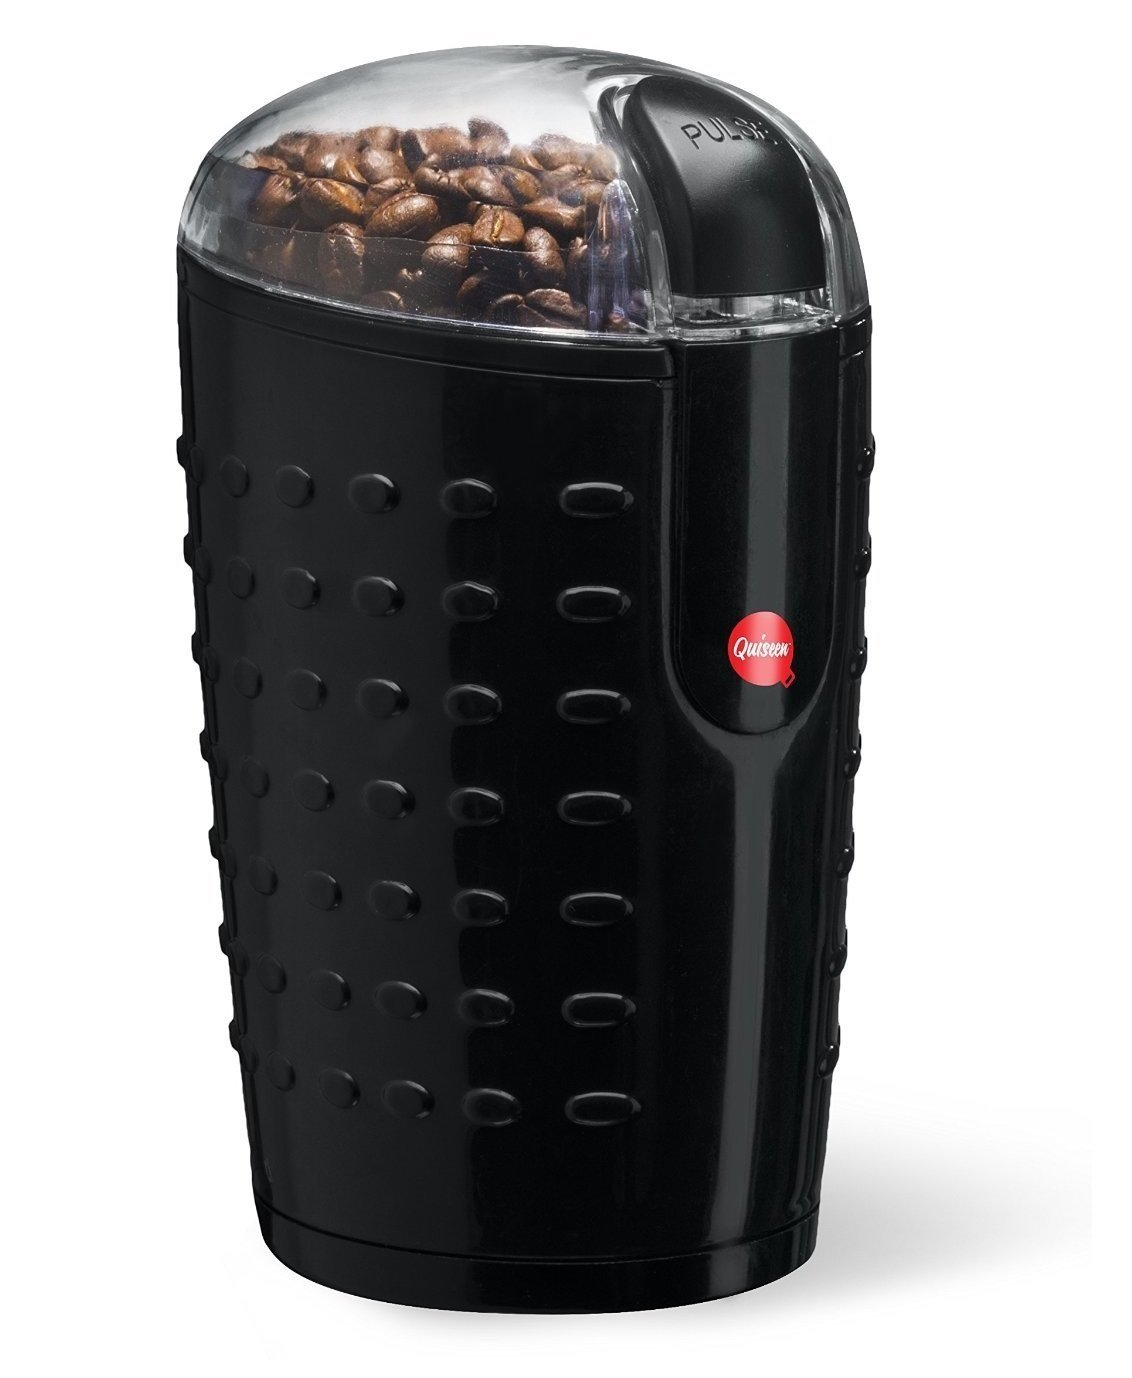 Quiseen One-Touch Electric Coffee Grinder.